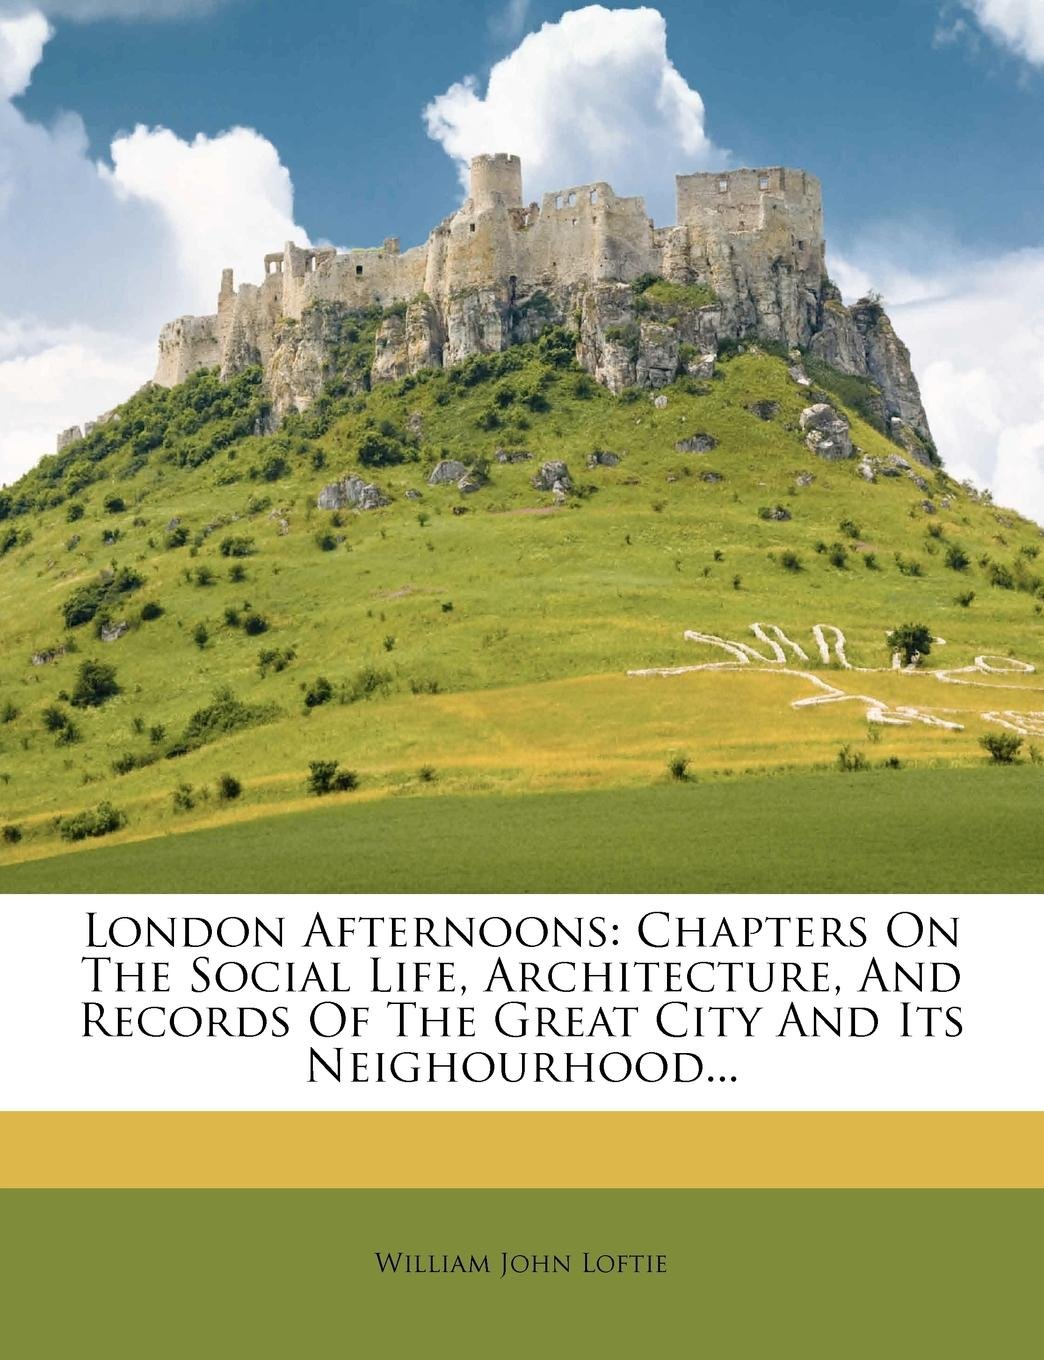 Download London Afternoons: Chapters On The Social Life, Architecture, And Records Of The Great City And Its Neighourhood... ePub fb2 ebook